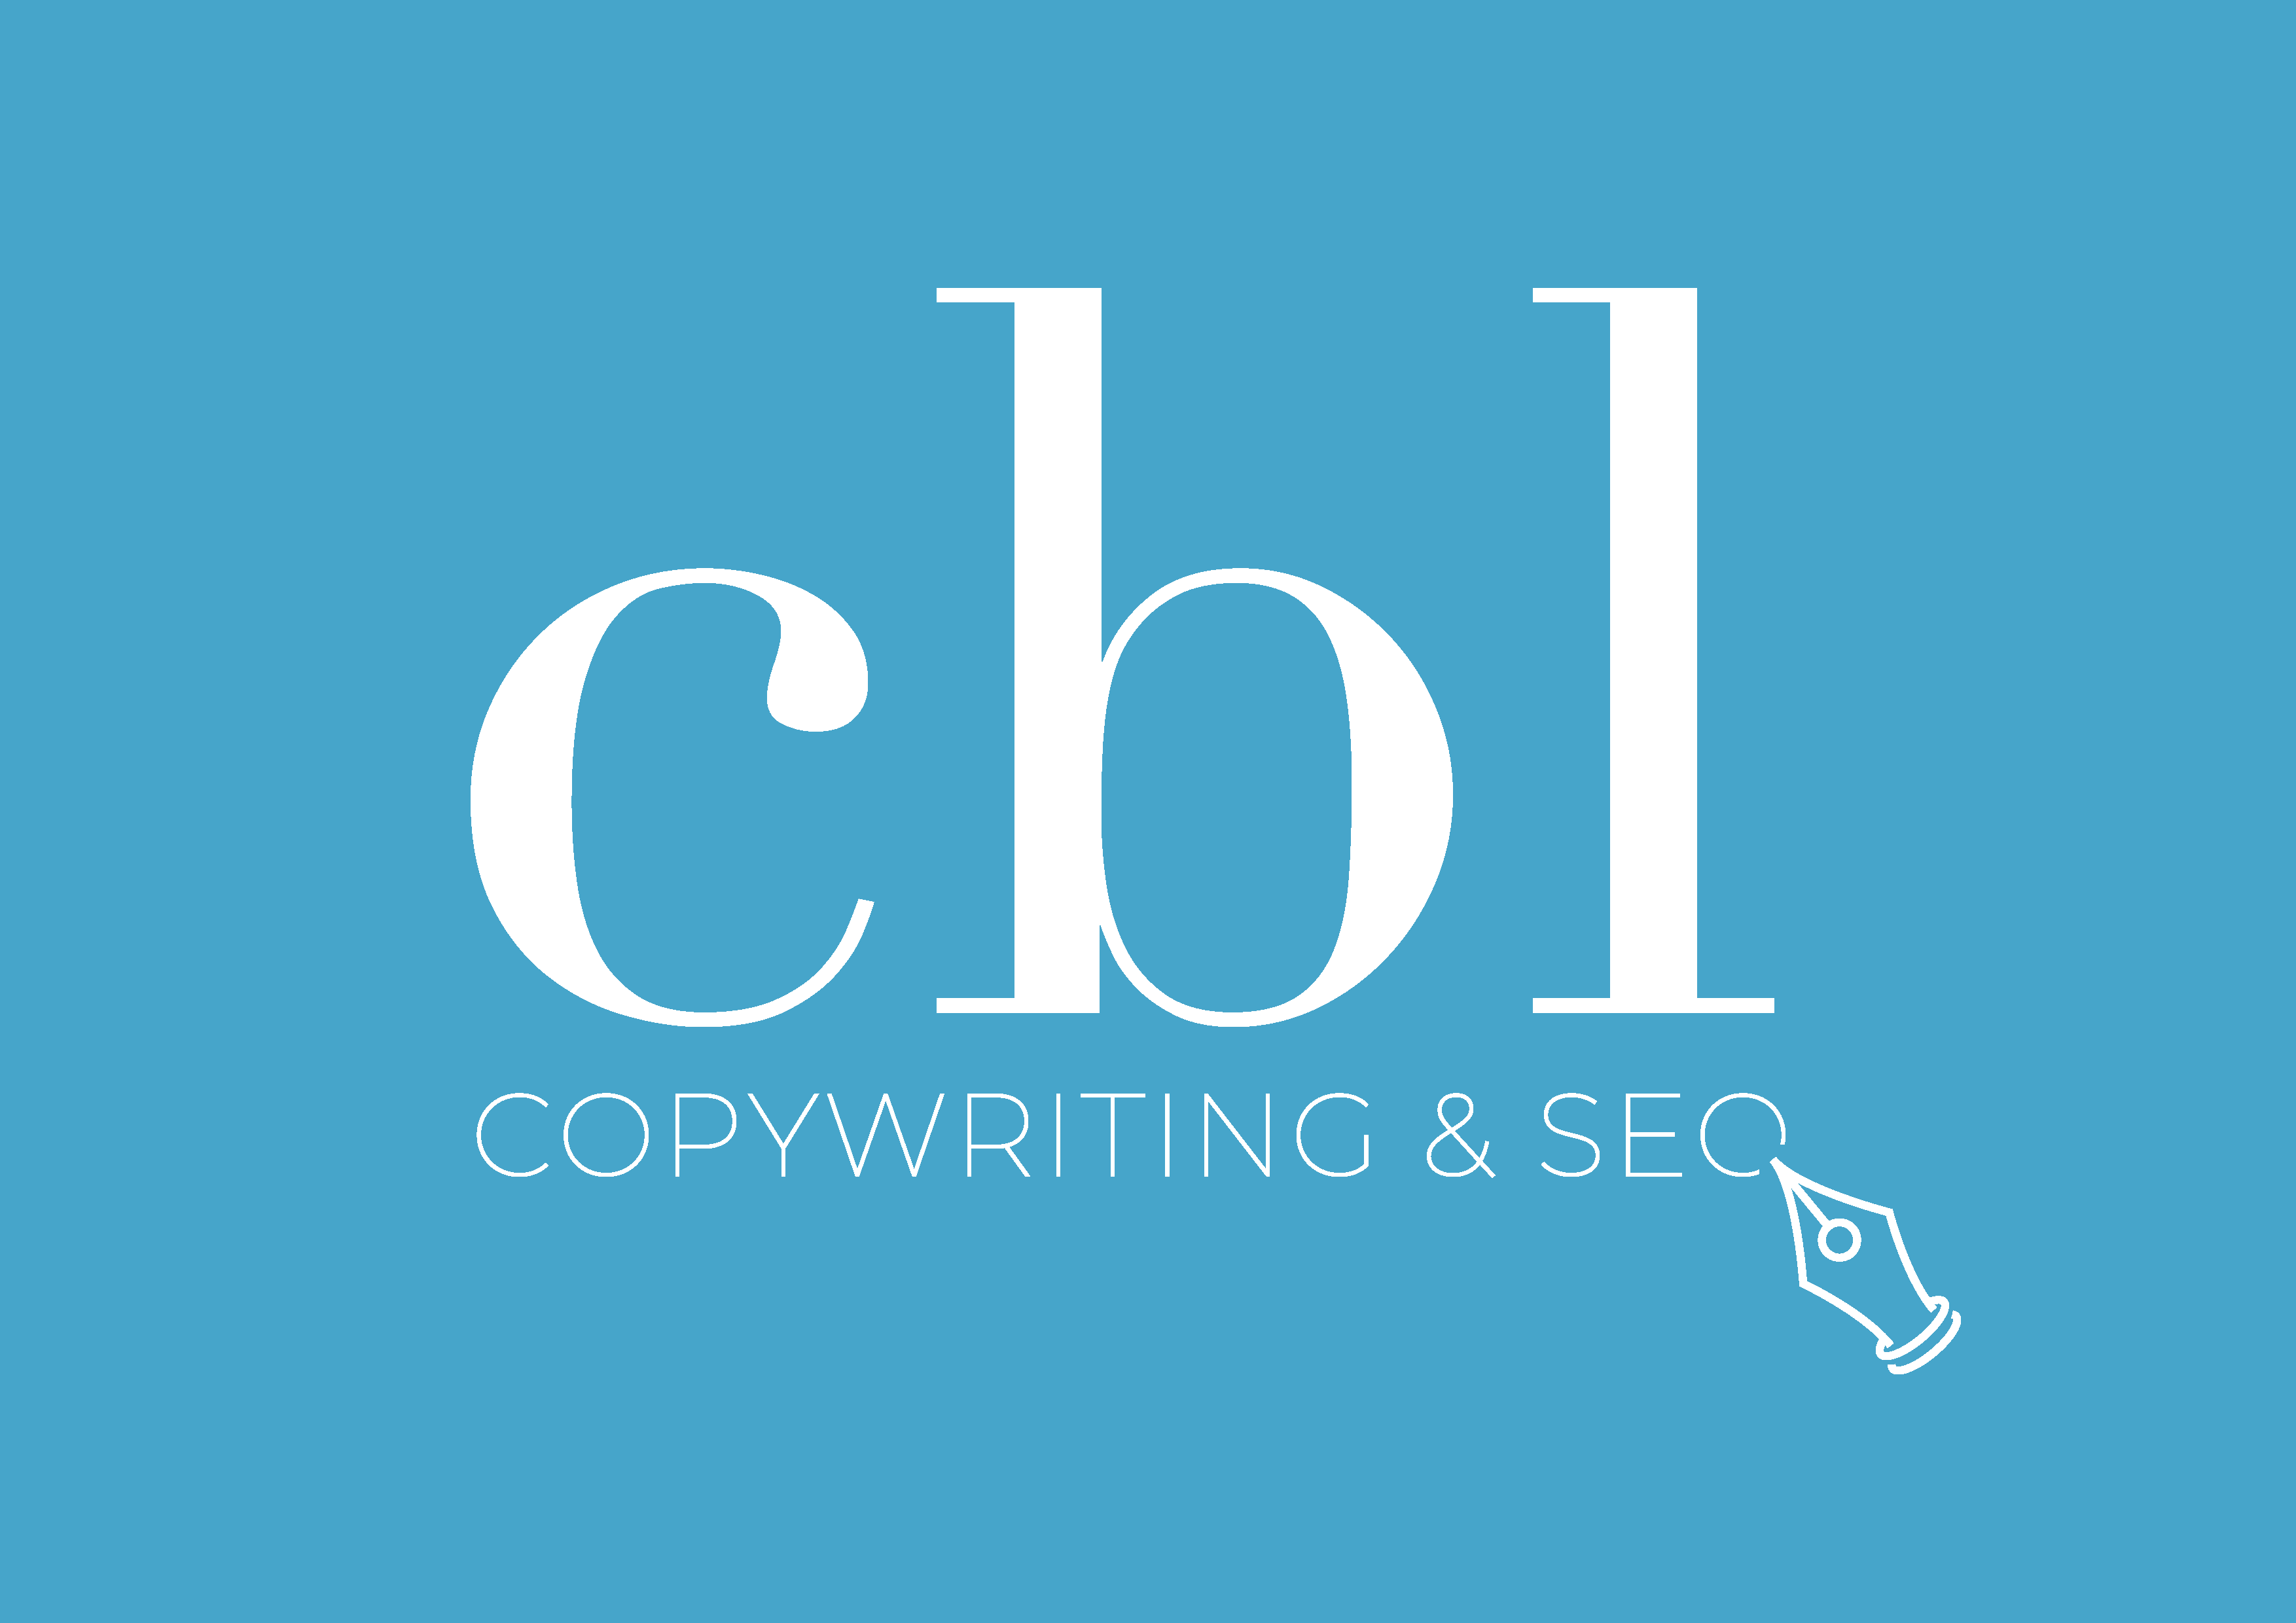 CBL Copywriting and SEO